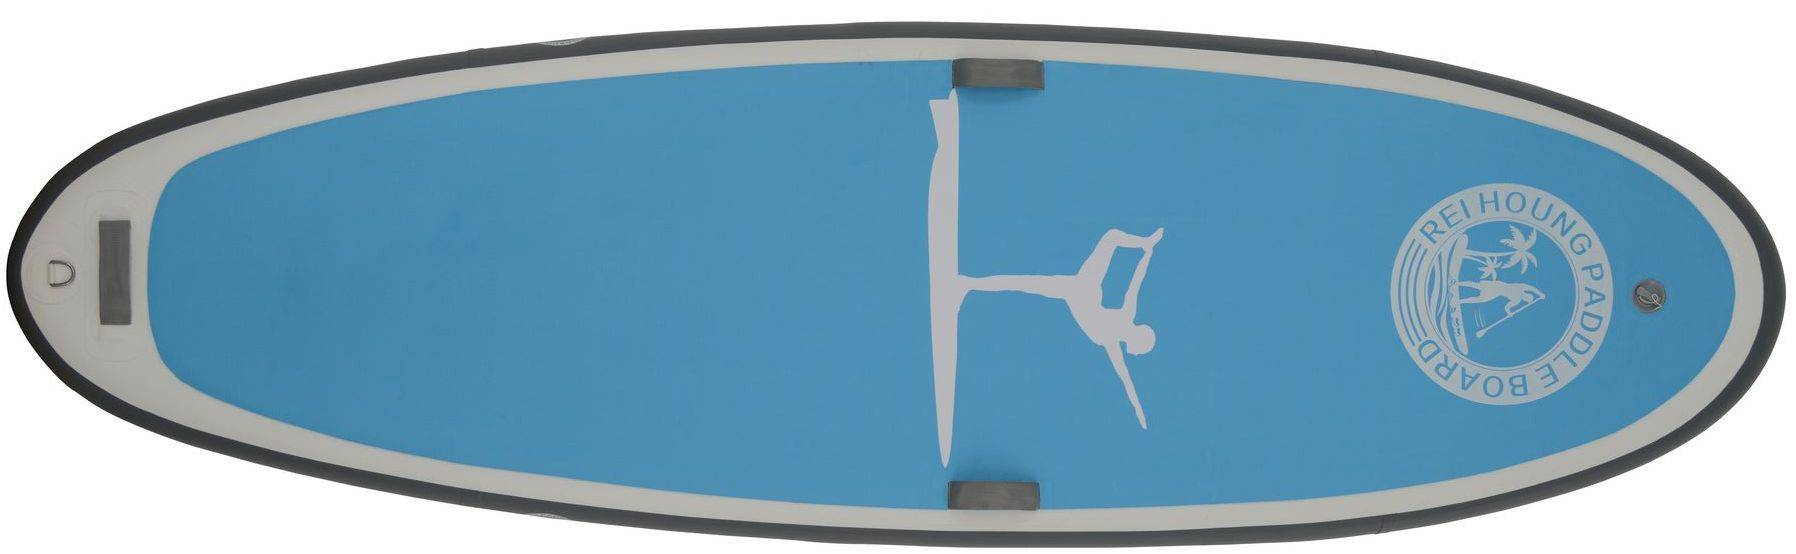 inflatable paddle board,inflatable boat,isup